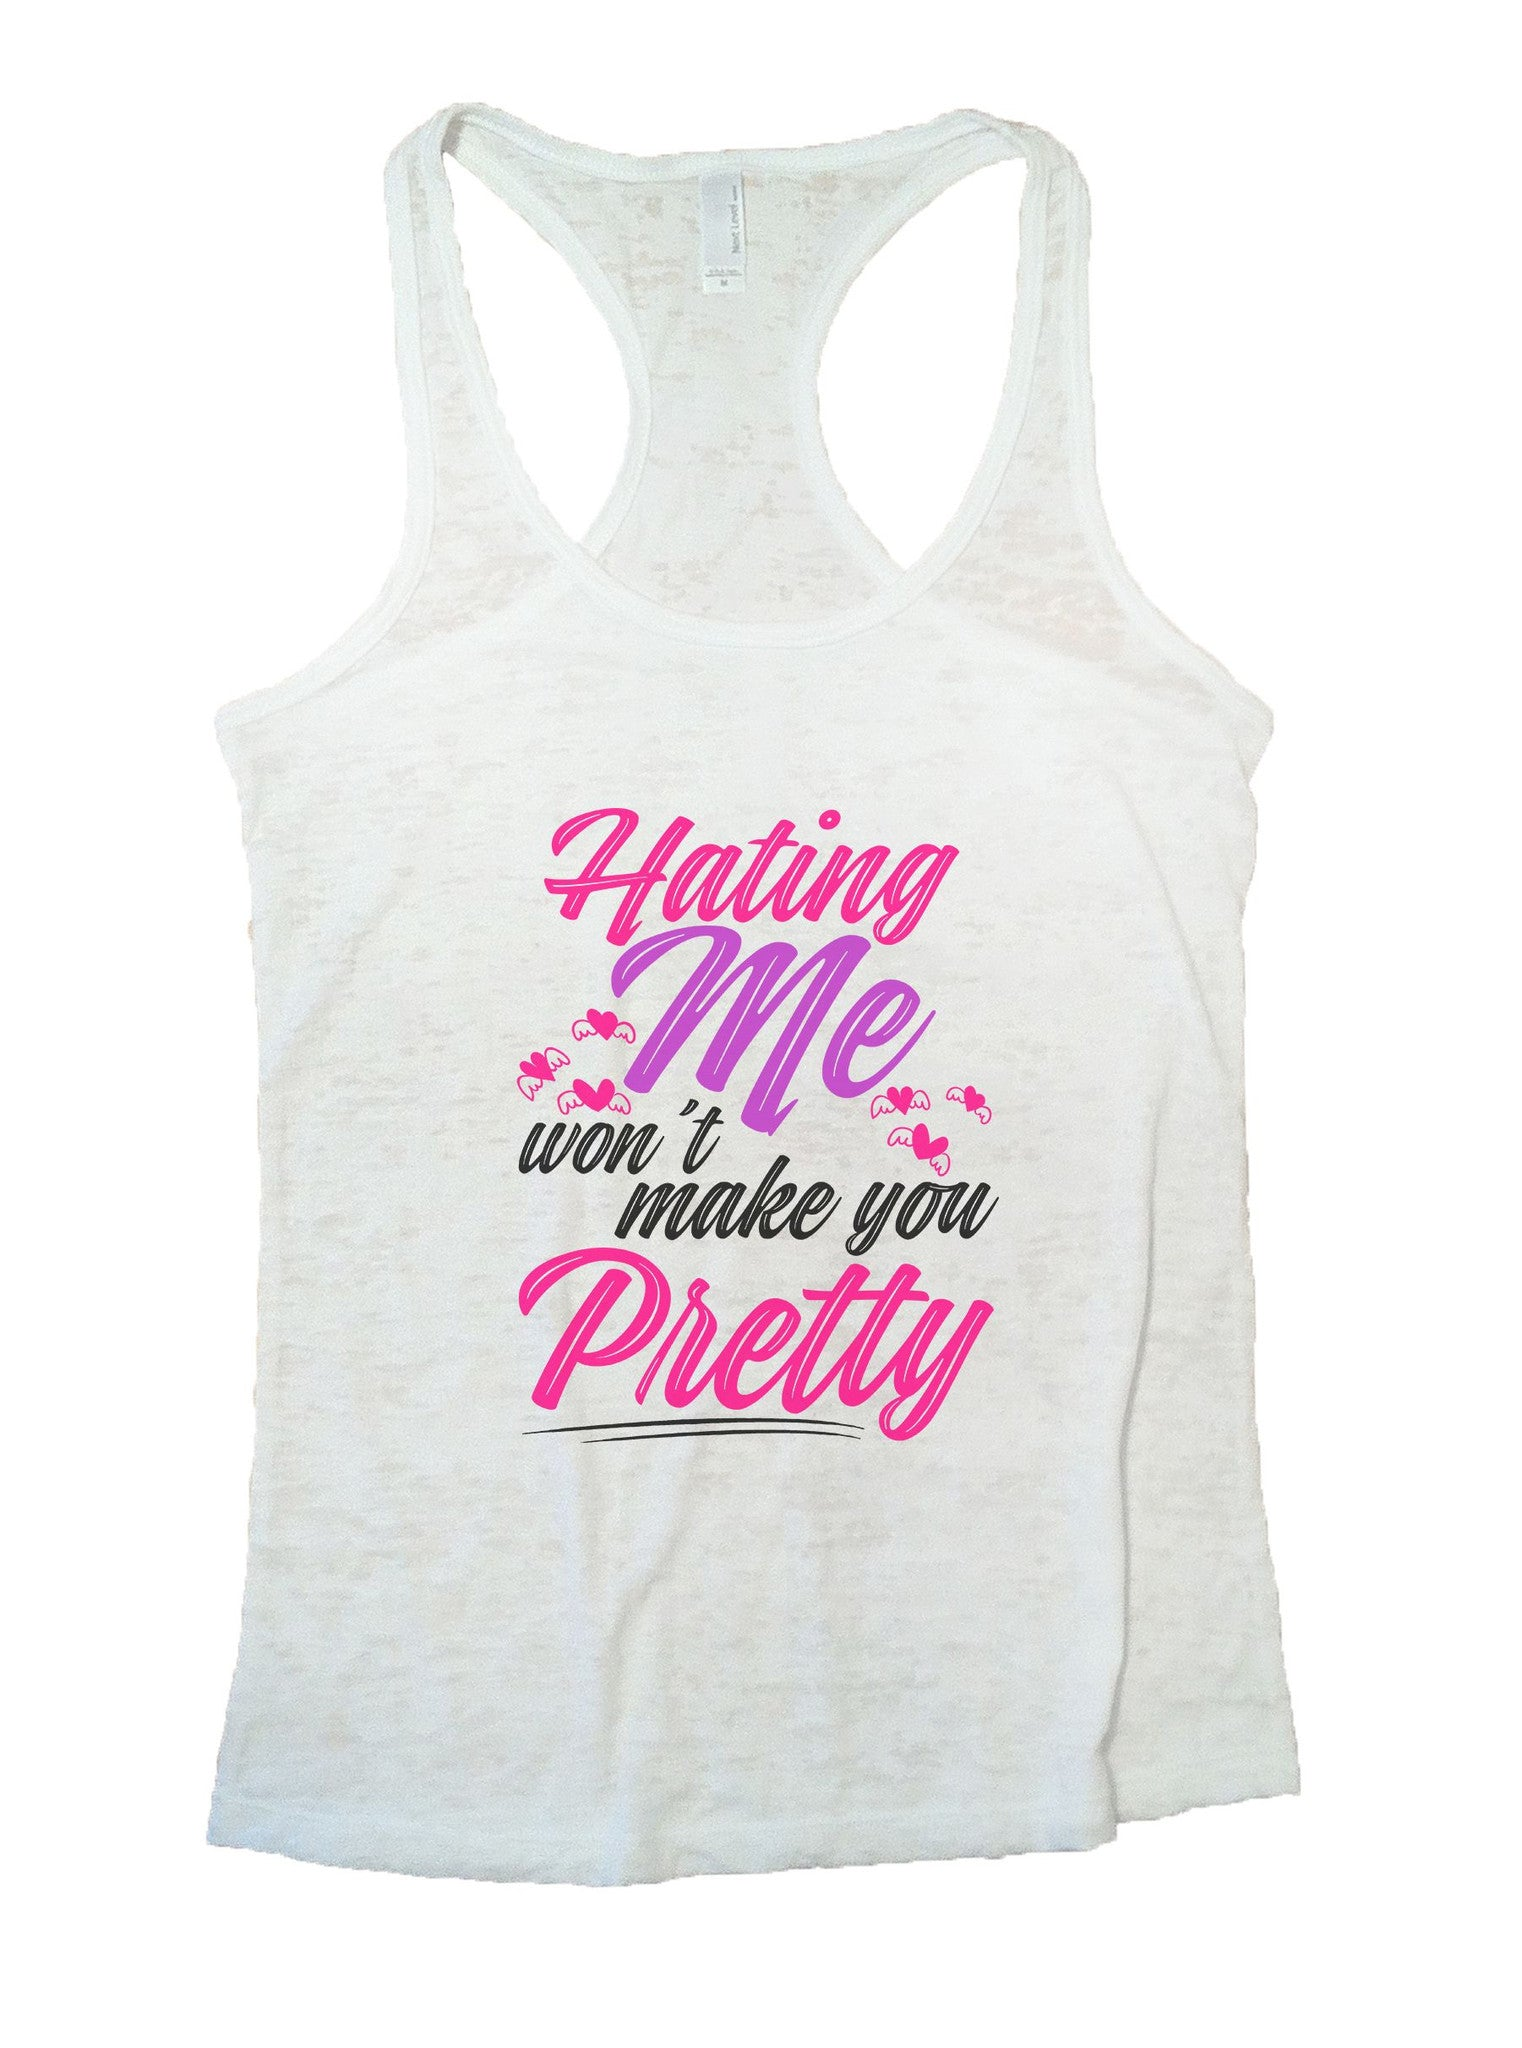 Hating Me Won't Make You Pretty Burnout Tank Top By BurnoutTankTops.com - 1123 - Funny Shirts Tank Tops Burnouts and Triblends  - 6